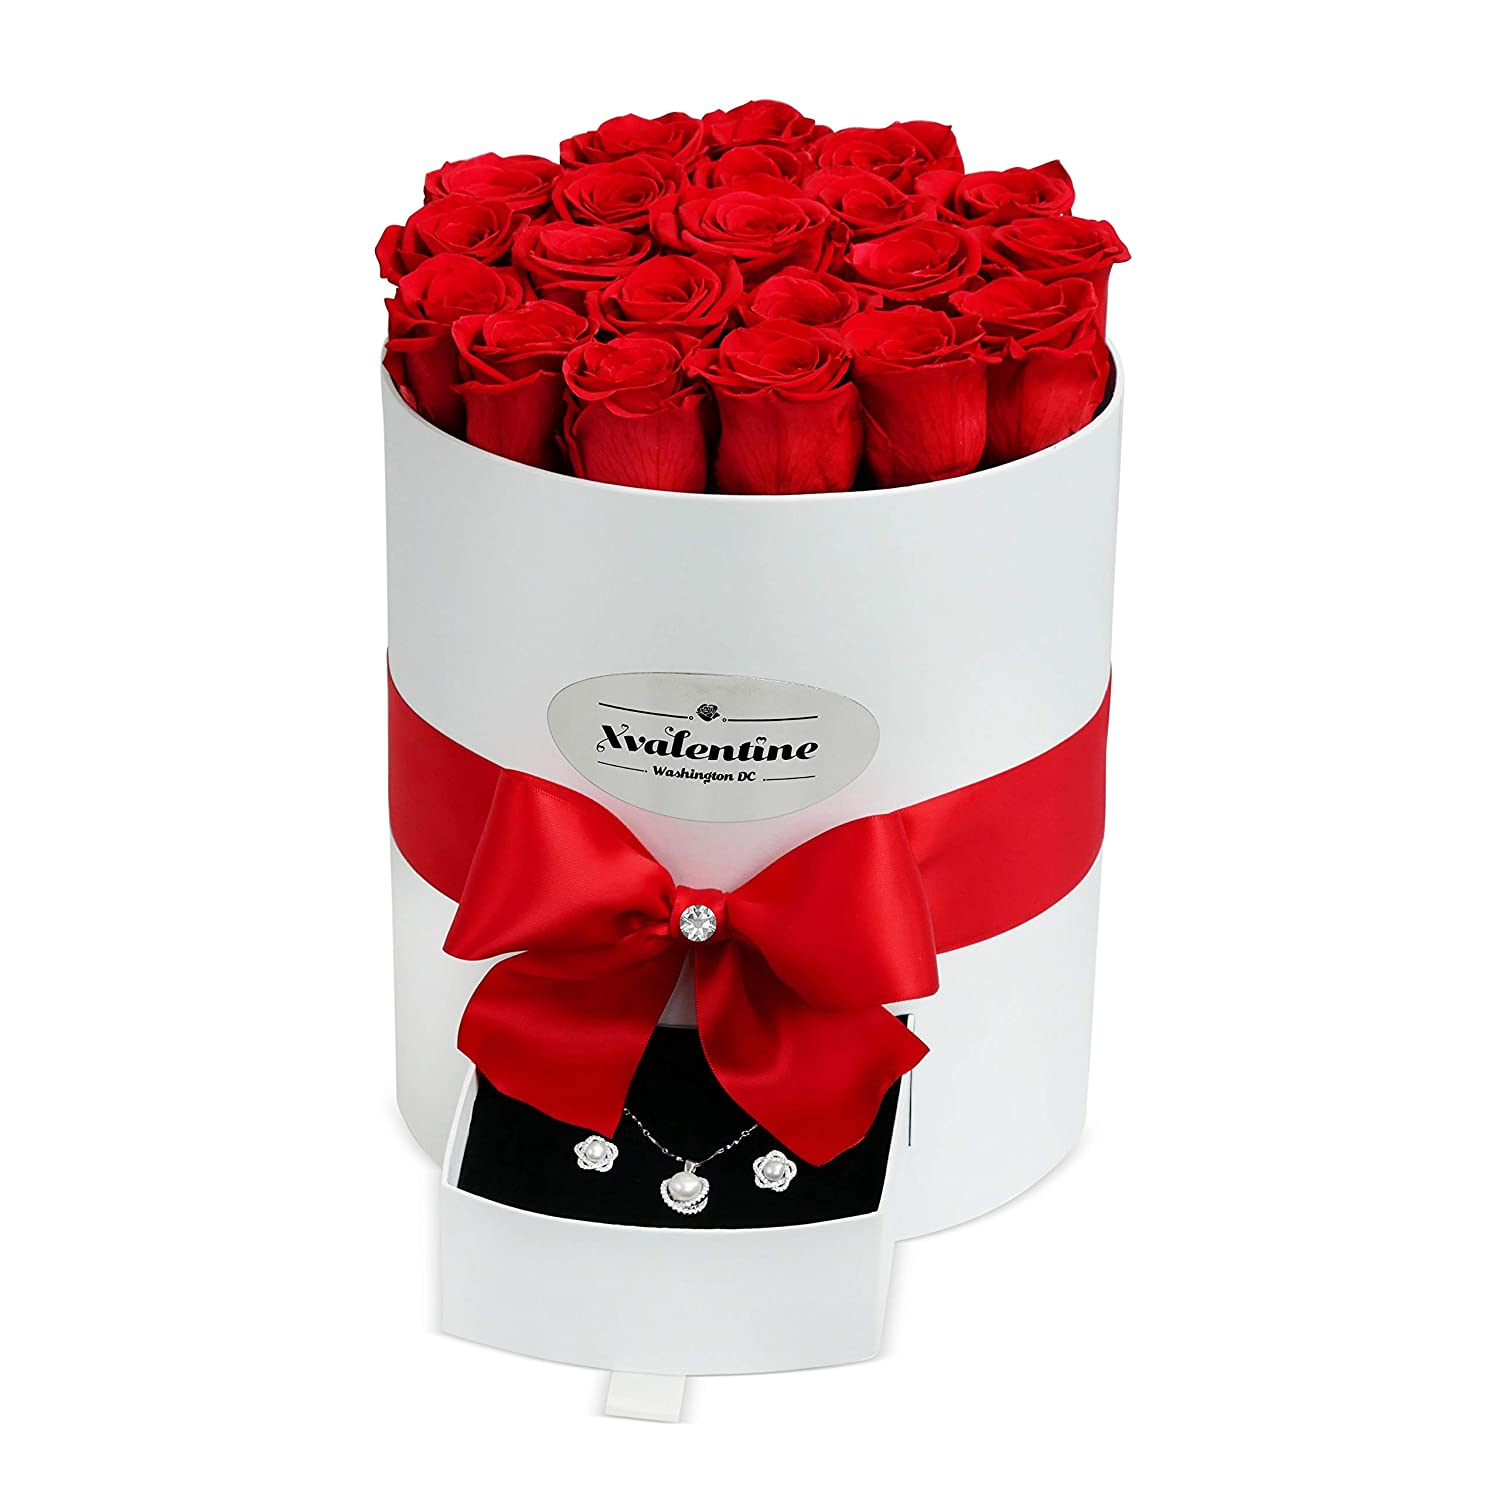 XValentine Grande White Box & Red Forever Roses | Real Roses That Last A Year| Eternal Roses | Preserved Roses That Last Forever | Handmade Rose Box | Eternity Roses for Any Occasion